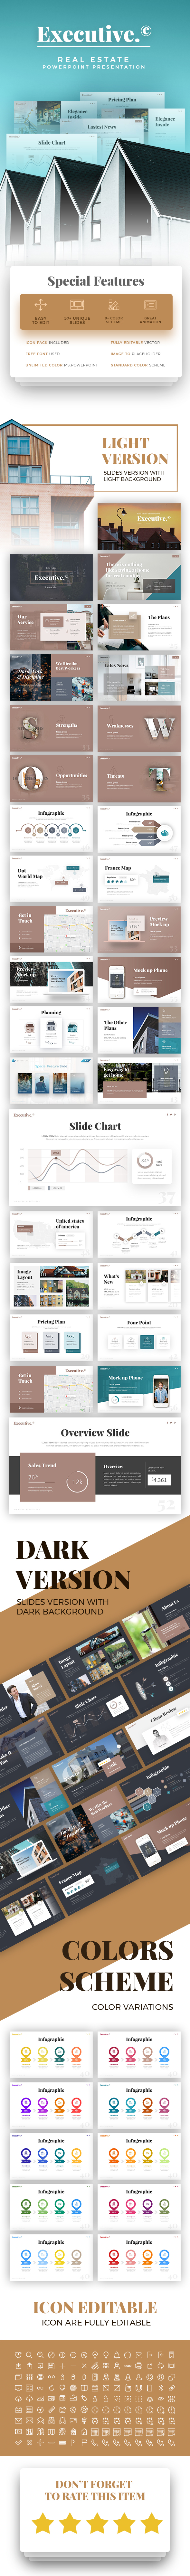 executive real estate presentation template by rrgraph graphicriver